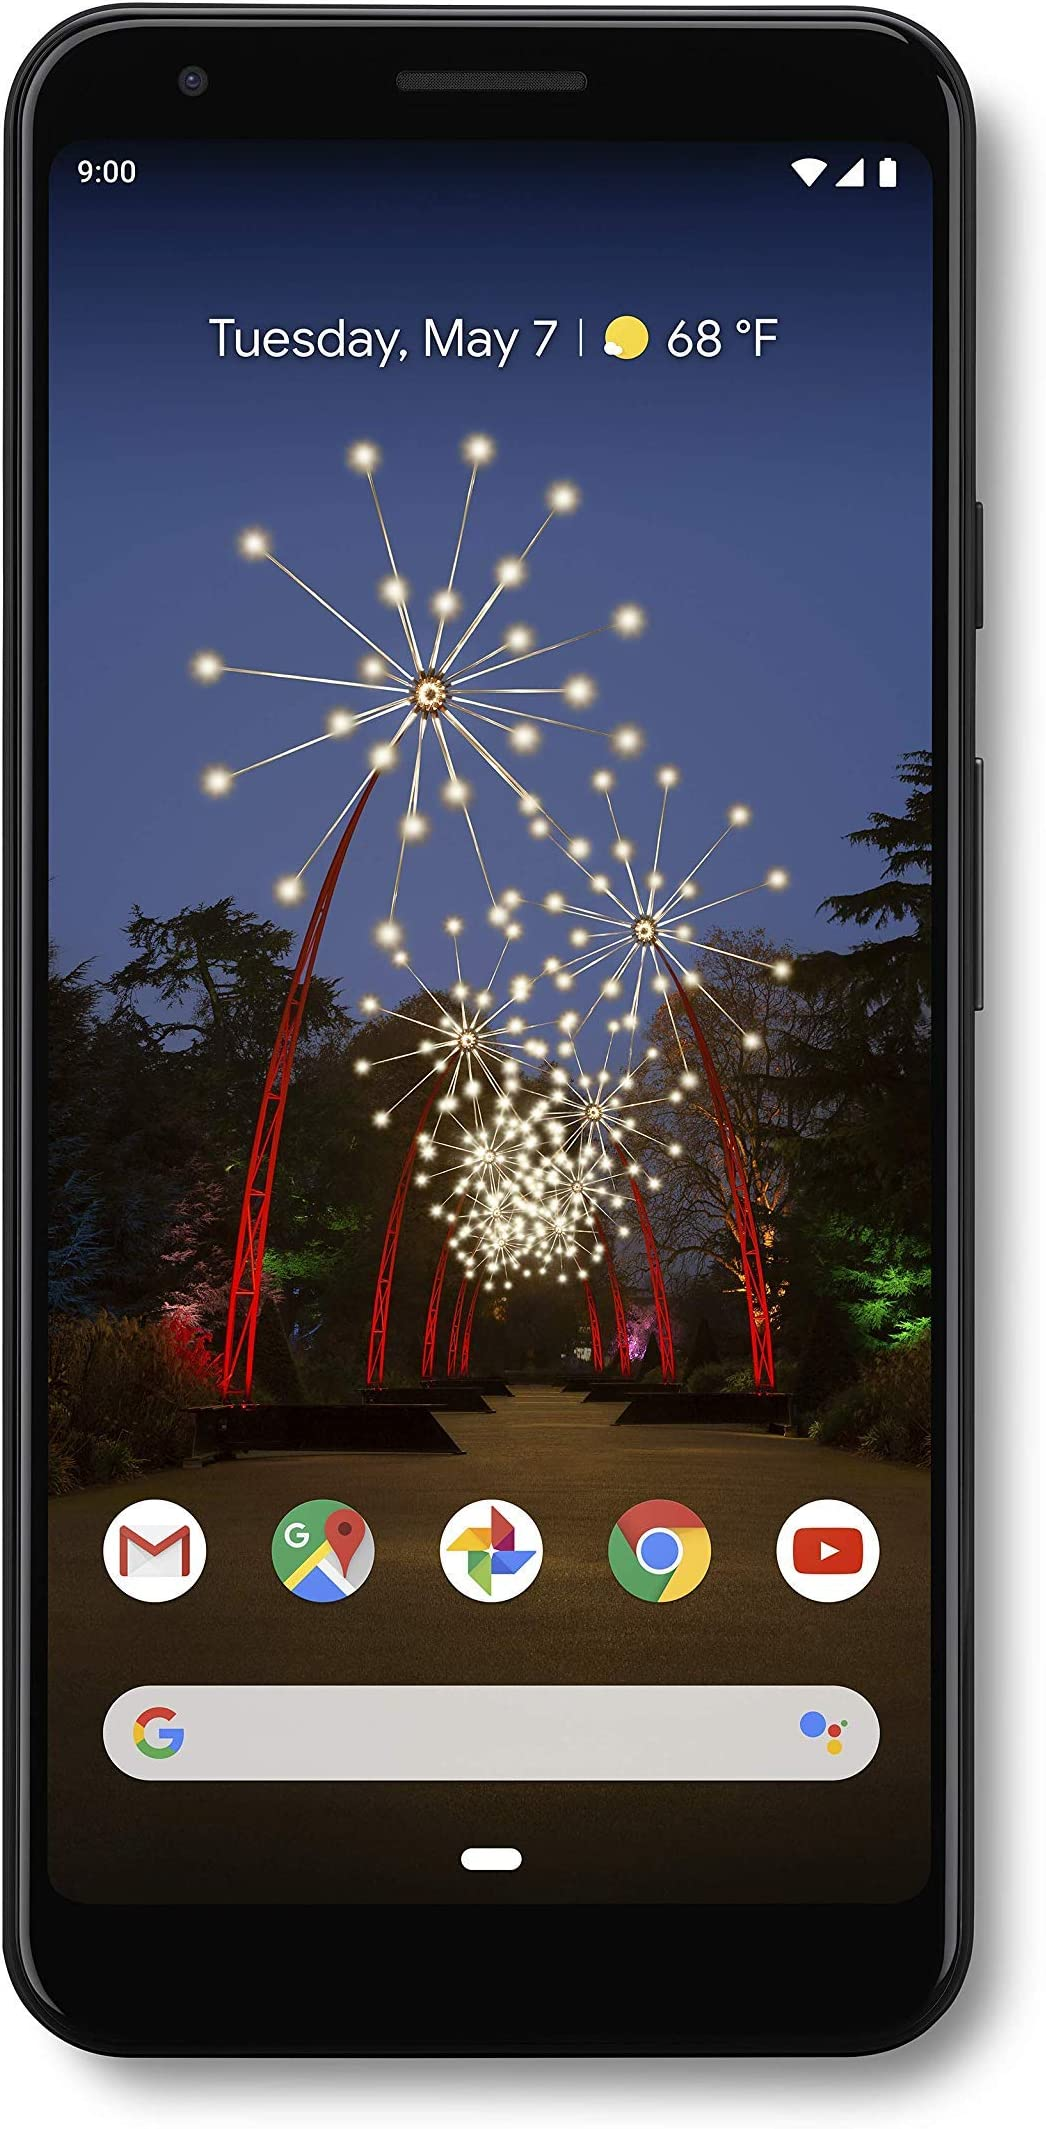 Google - Pixel 3a X-Large with 64GB Memory Cell Phone (Unlocked) - Just Black (G020C)